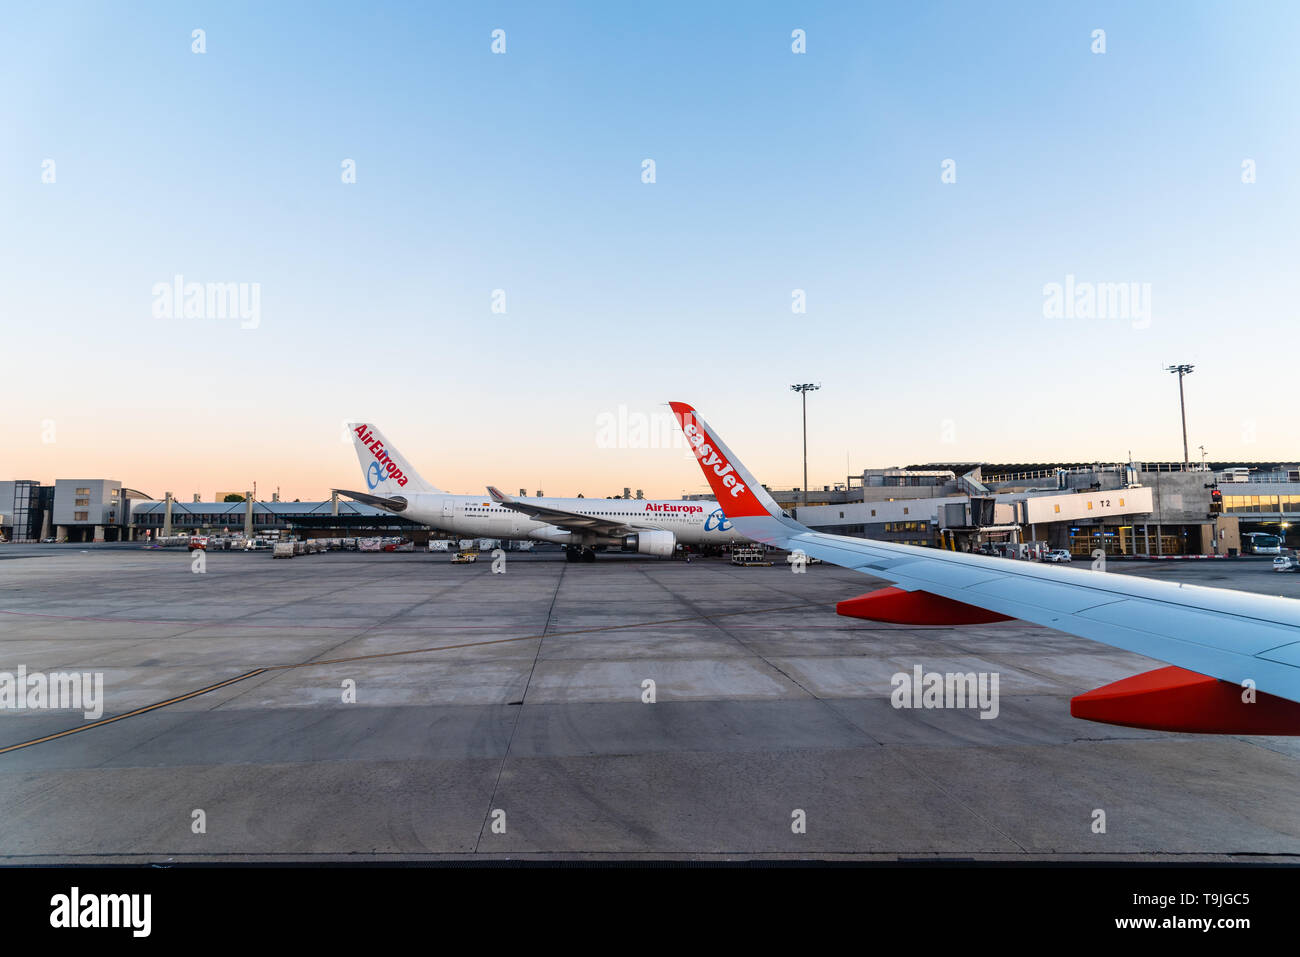 Madrid, Spain - May 14, 2019:  Airplanes in runway of international airport of Madrid a clear day at sunrise Stock Photo